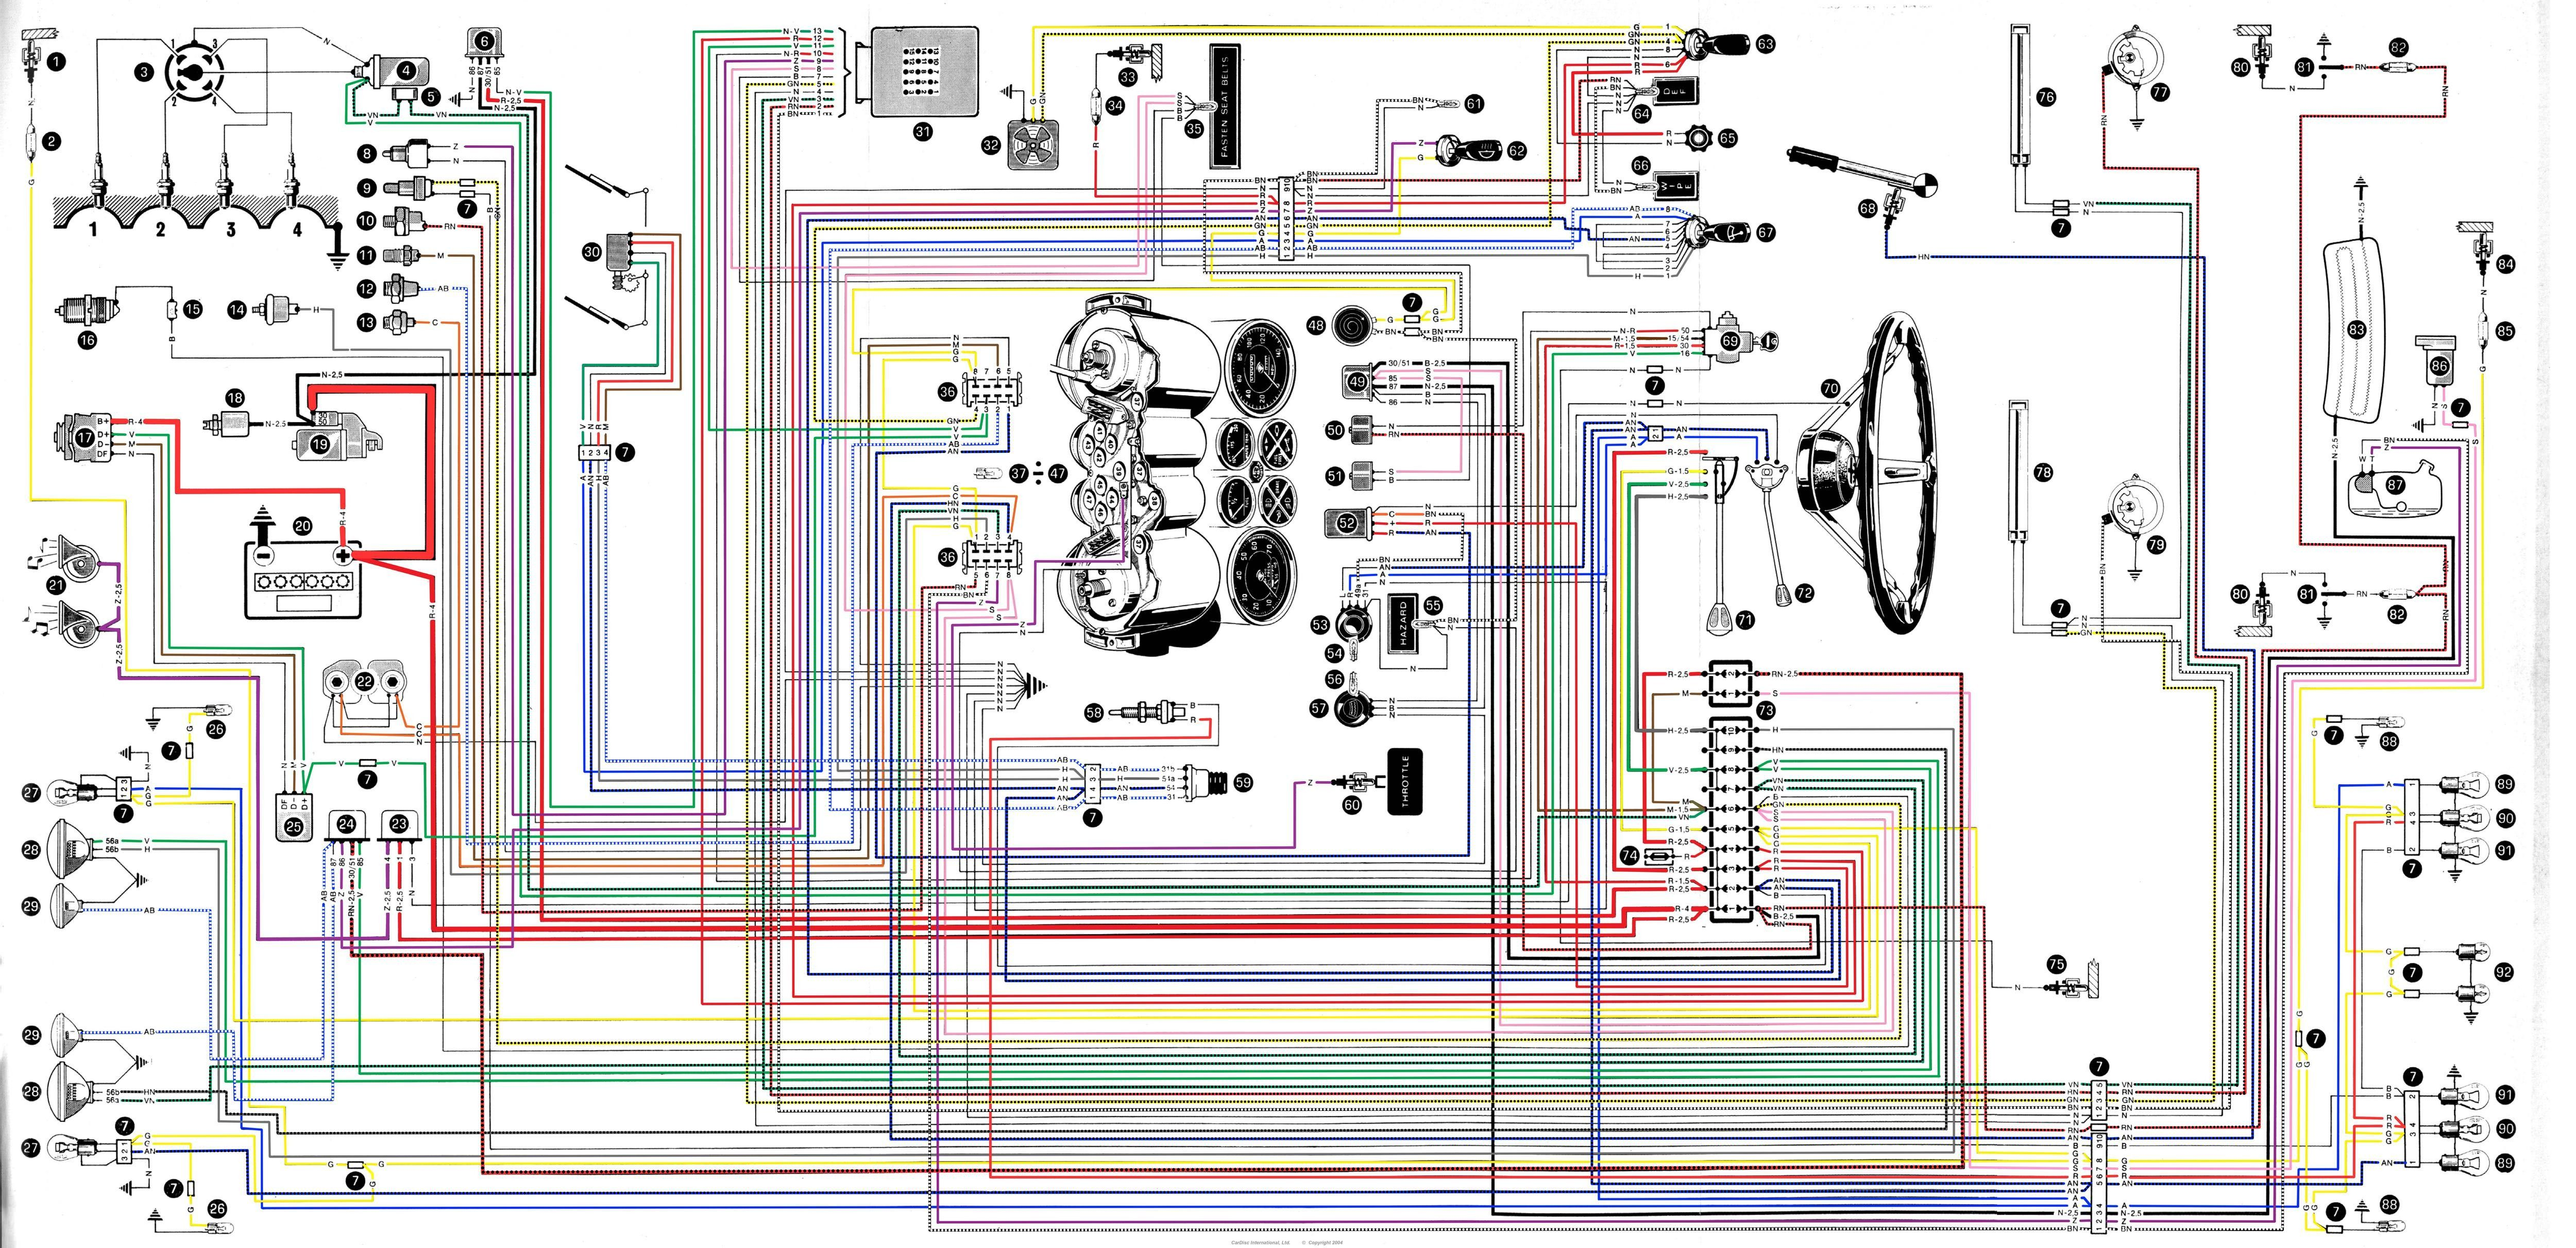 New Combi Boiler thermostat Wiring Diagram Thermostat